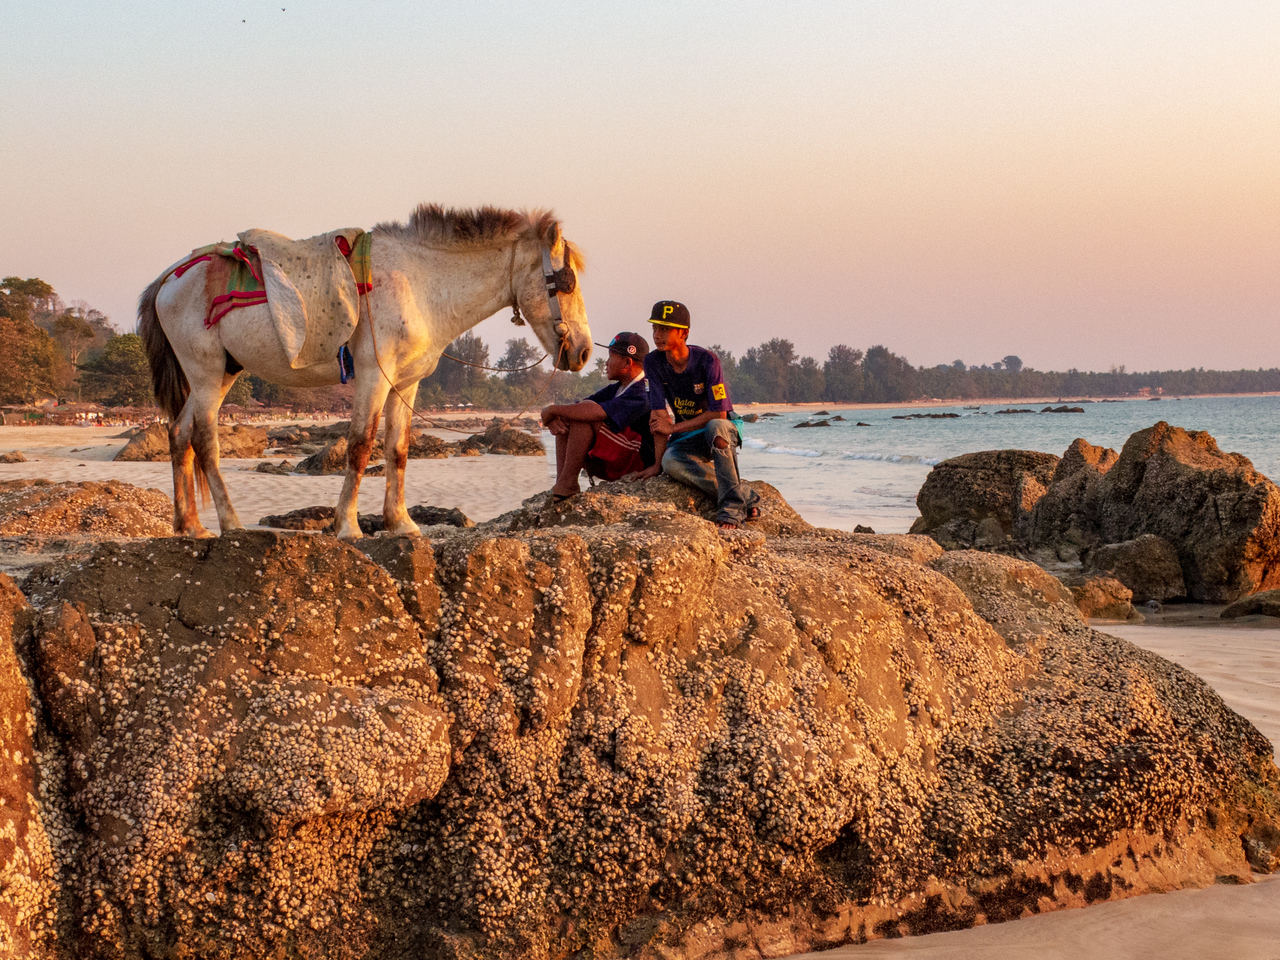 Photo: A Horse at Sunset on Ngapali Beach, Myanmar